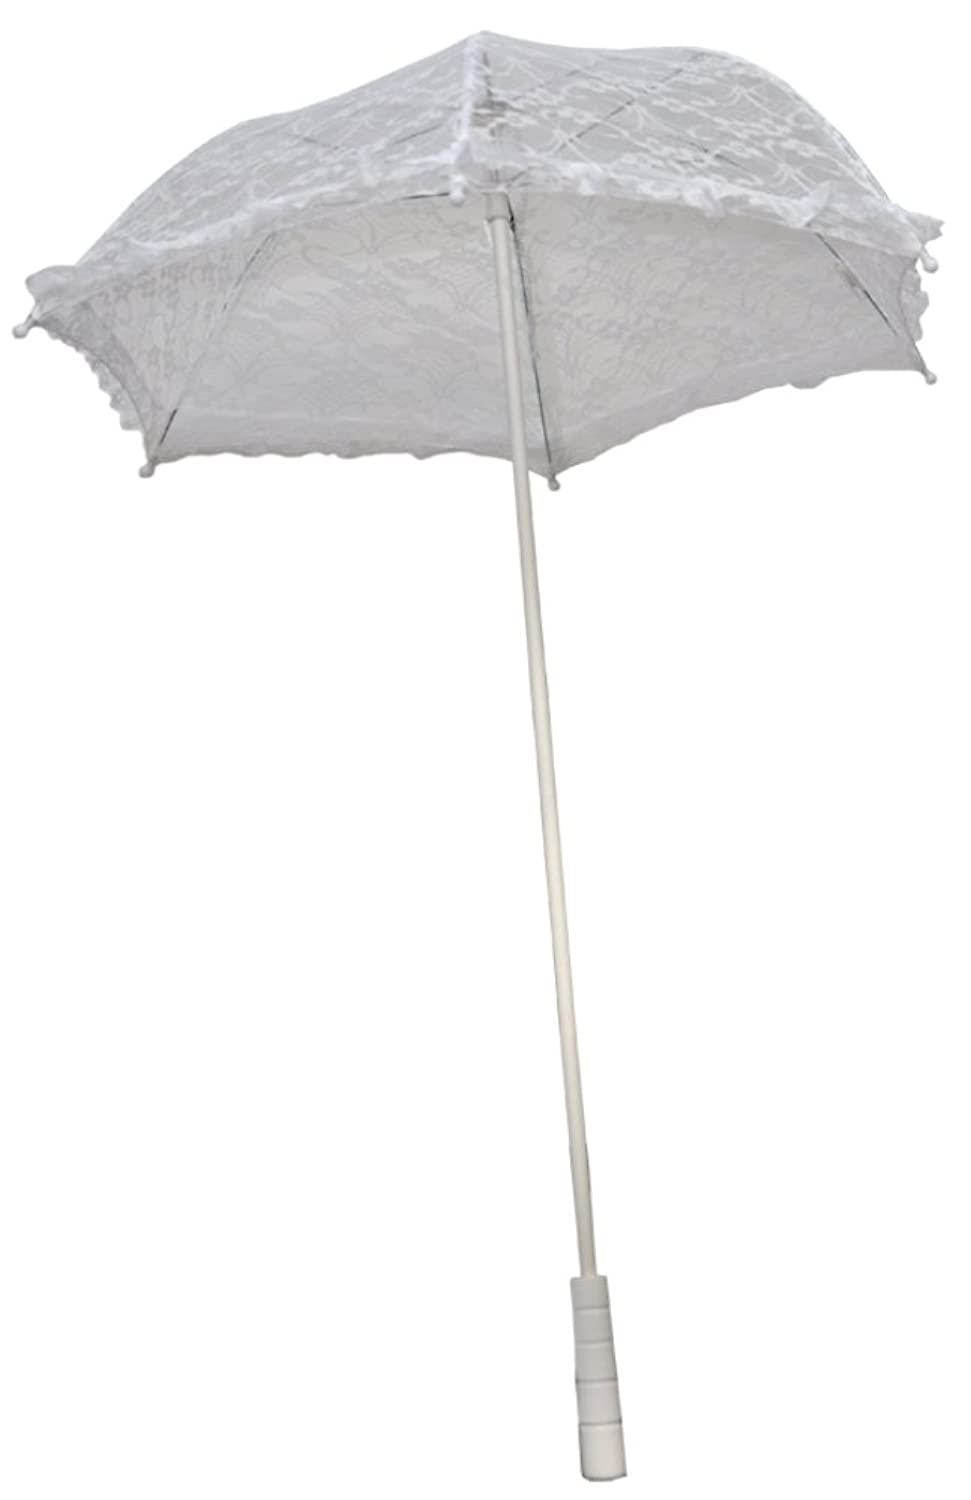 Vintage Style Parasols and Umbrellas Morris Custumes Womens Parasol Nylon Ruffle $22.30 AT vintagedancer.com